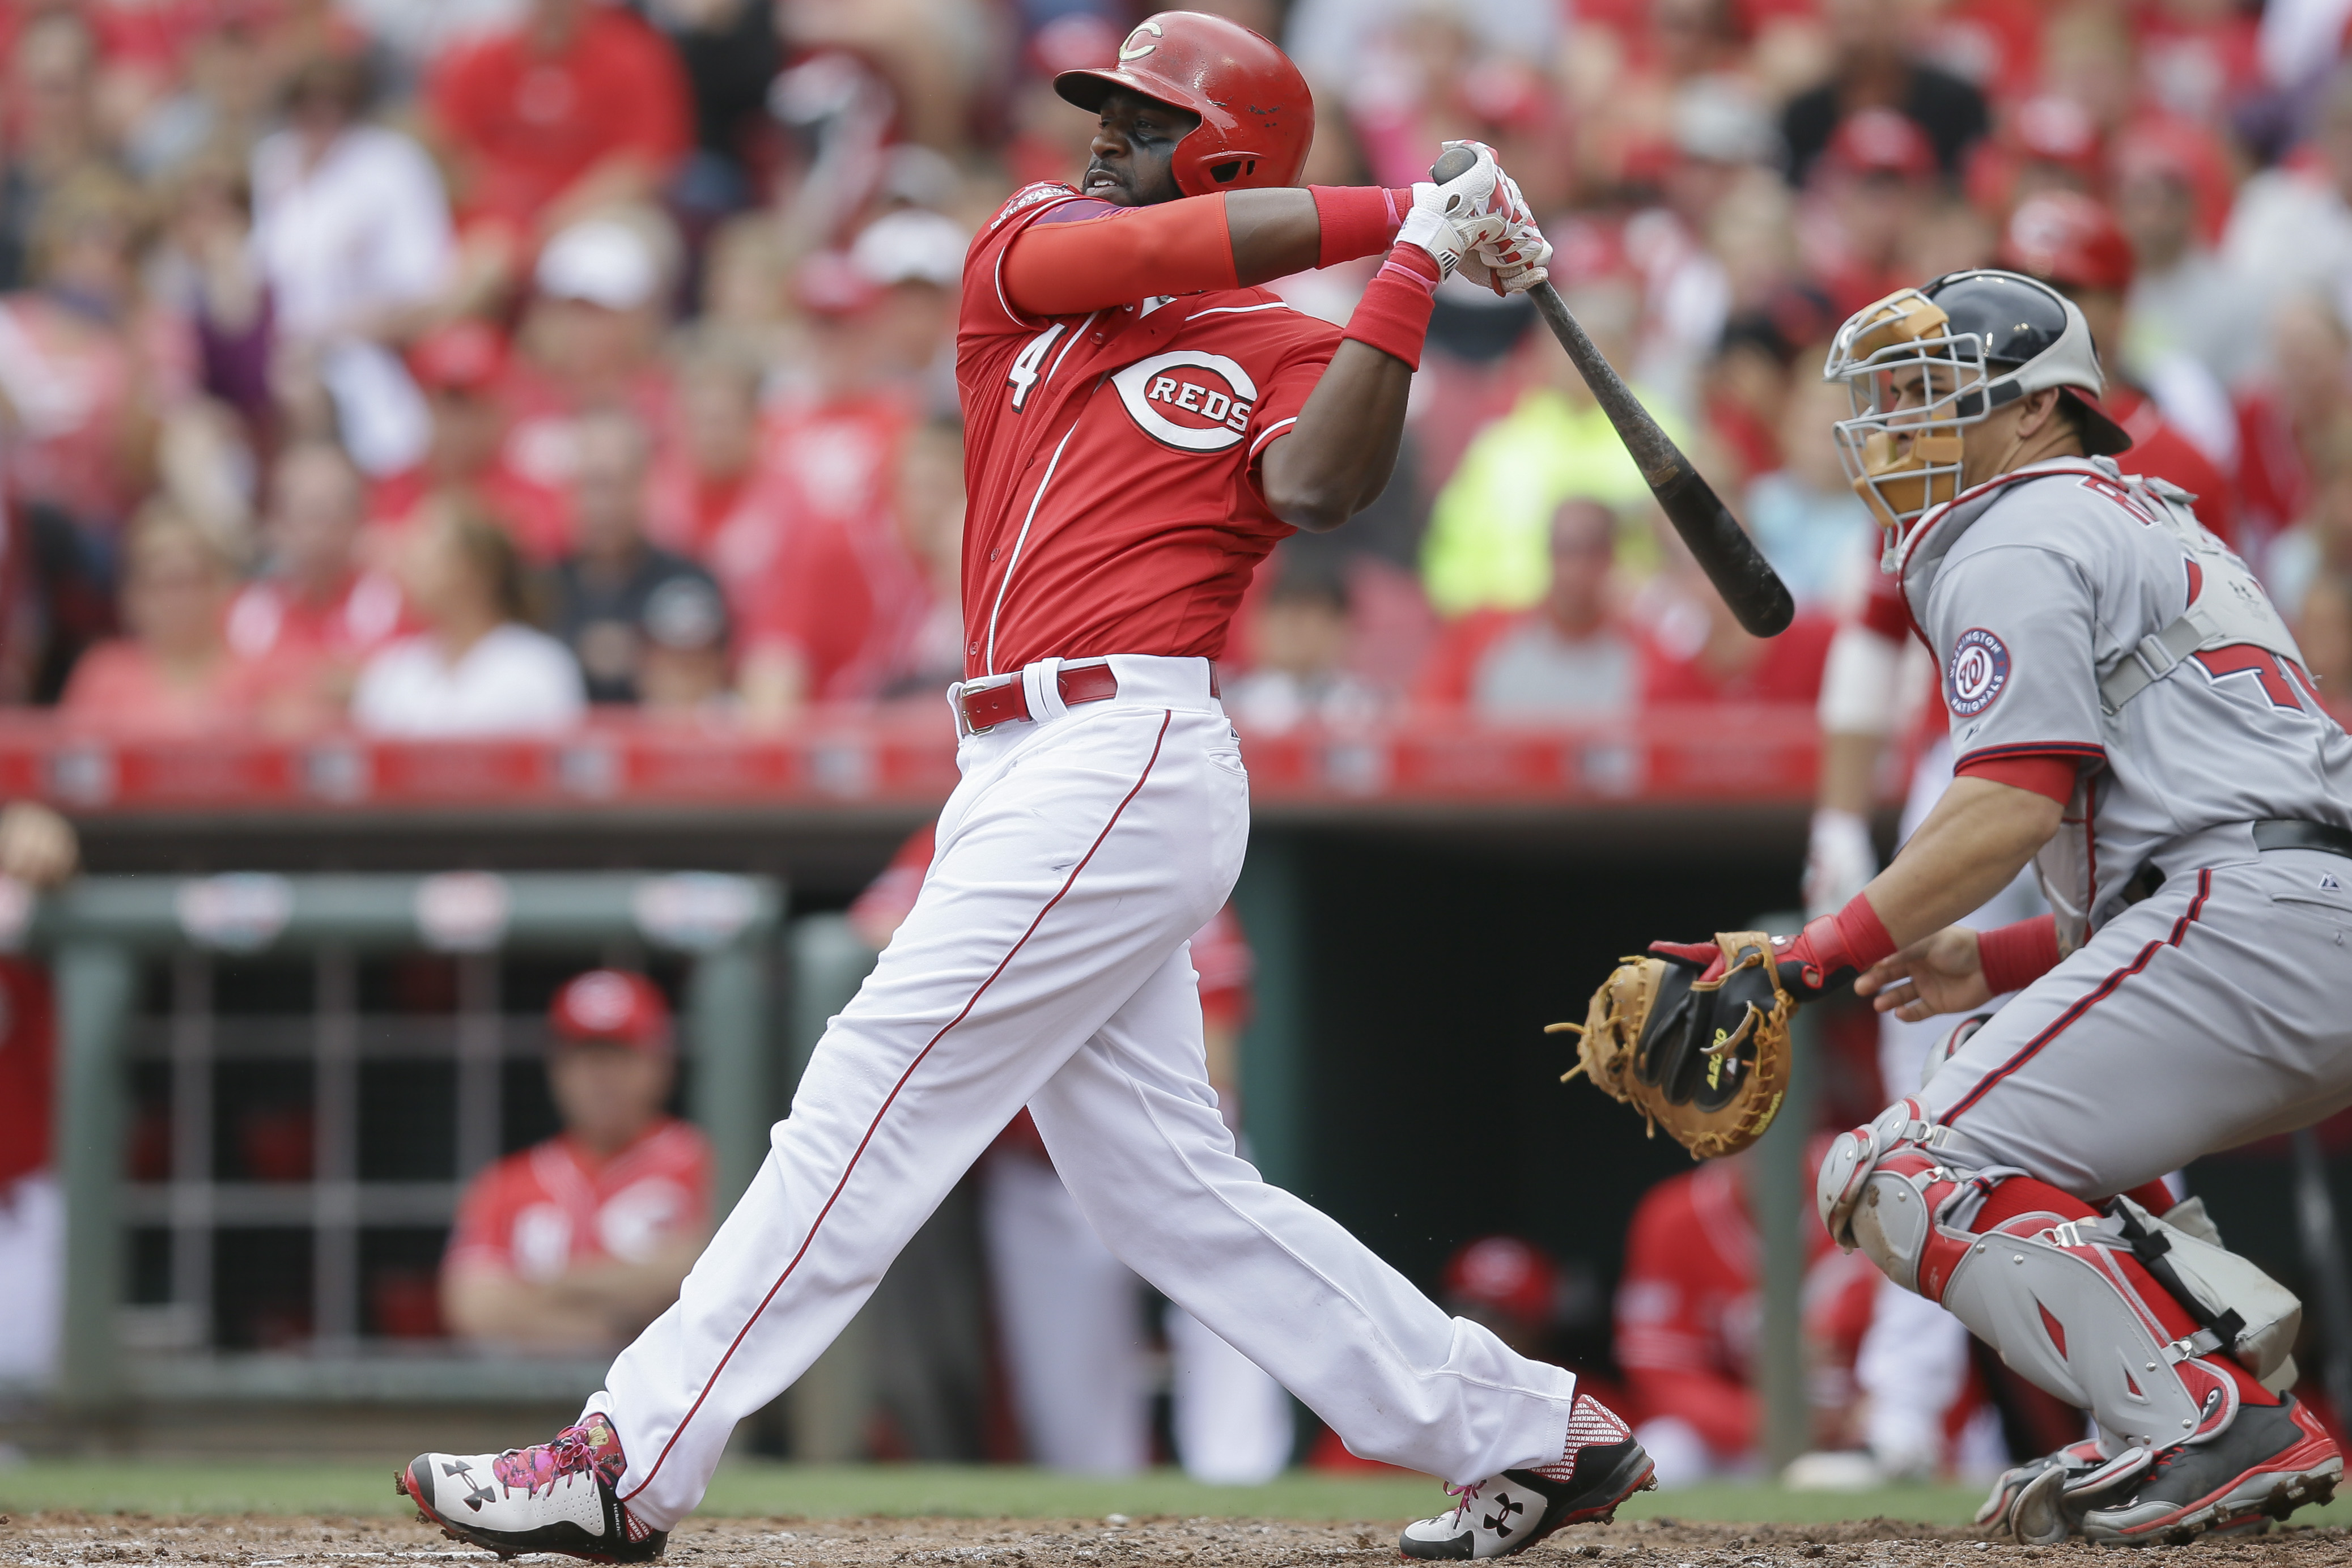 Cincinnati Reds' Brandon Phillips hits a double to drive home Billy Hamilton to start a six-run rally in the seventh inning of a baseball game against the Washington Nationals, Sunday, May 31, 2015, in Cincinnati. (AP Photo/John Minchillo)